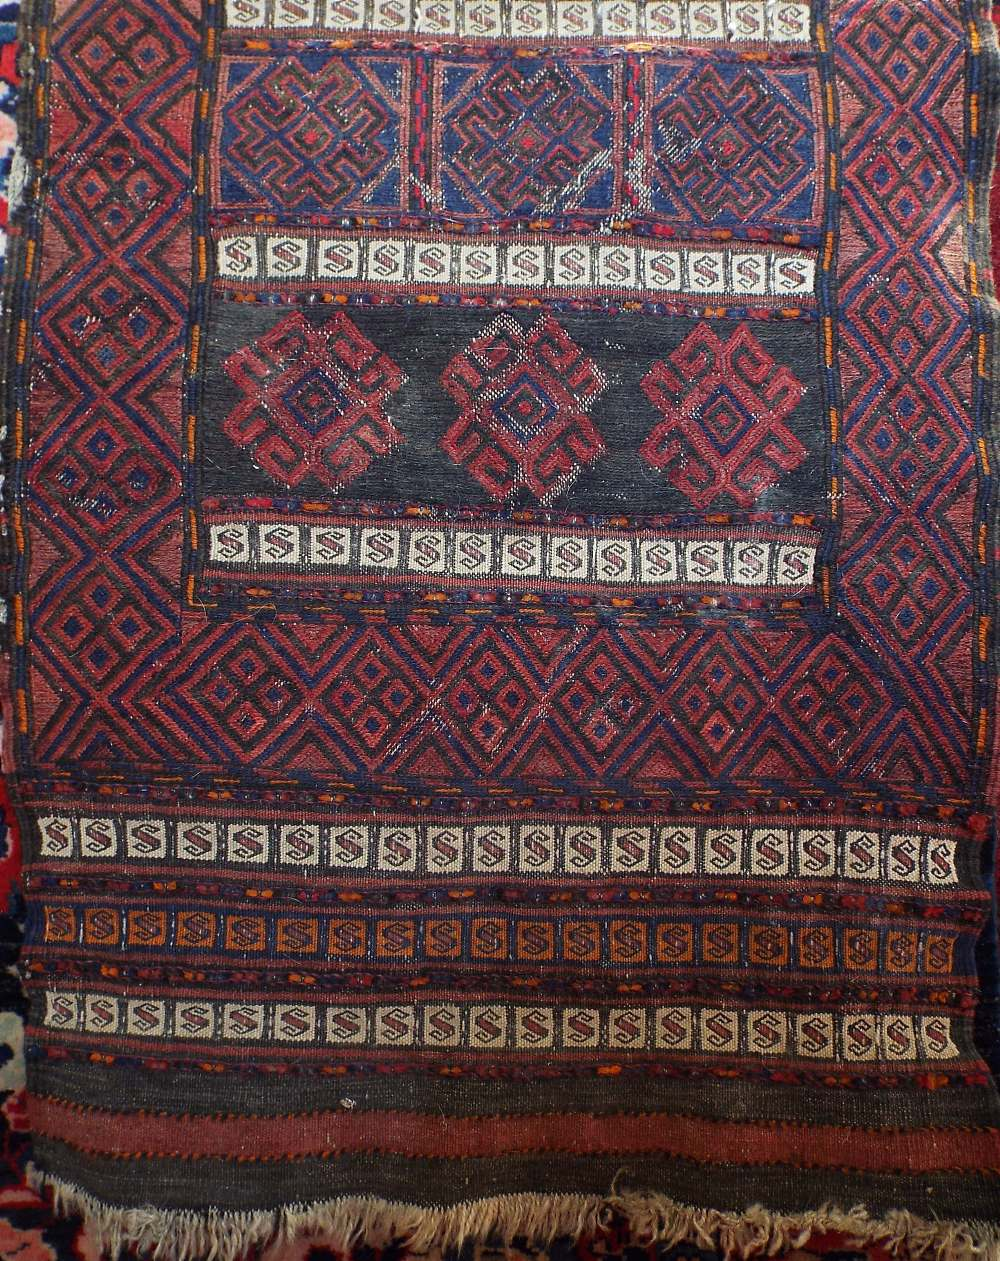 Lot 1415 - Old Kelim runner with typical geometric decoration upon a dark ground, 220 x 65 cm